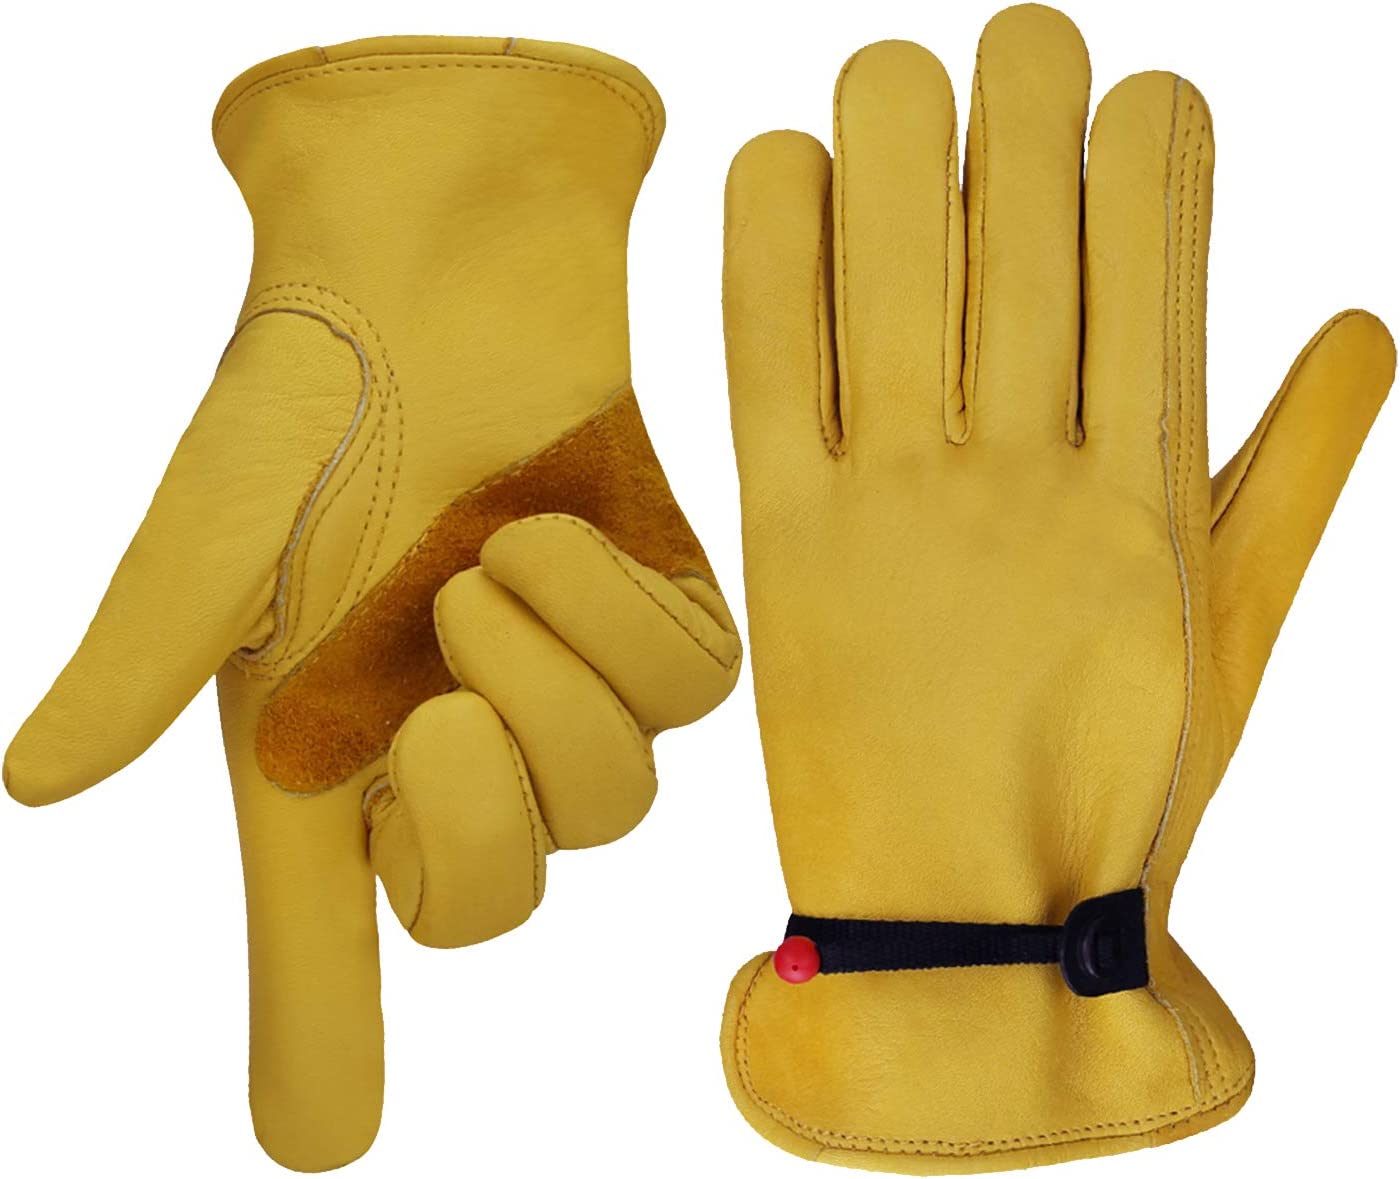 Leather Working Gloves for Gardening,Thornproof Gardening Gloves for Men and Women Medium